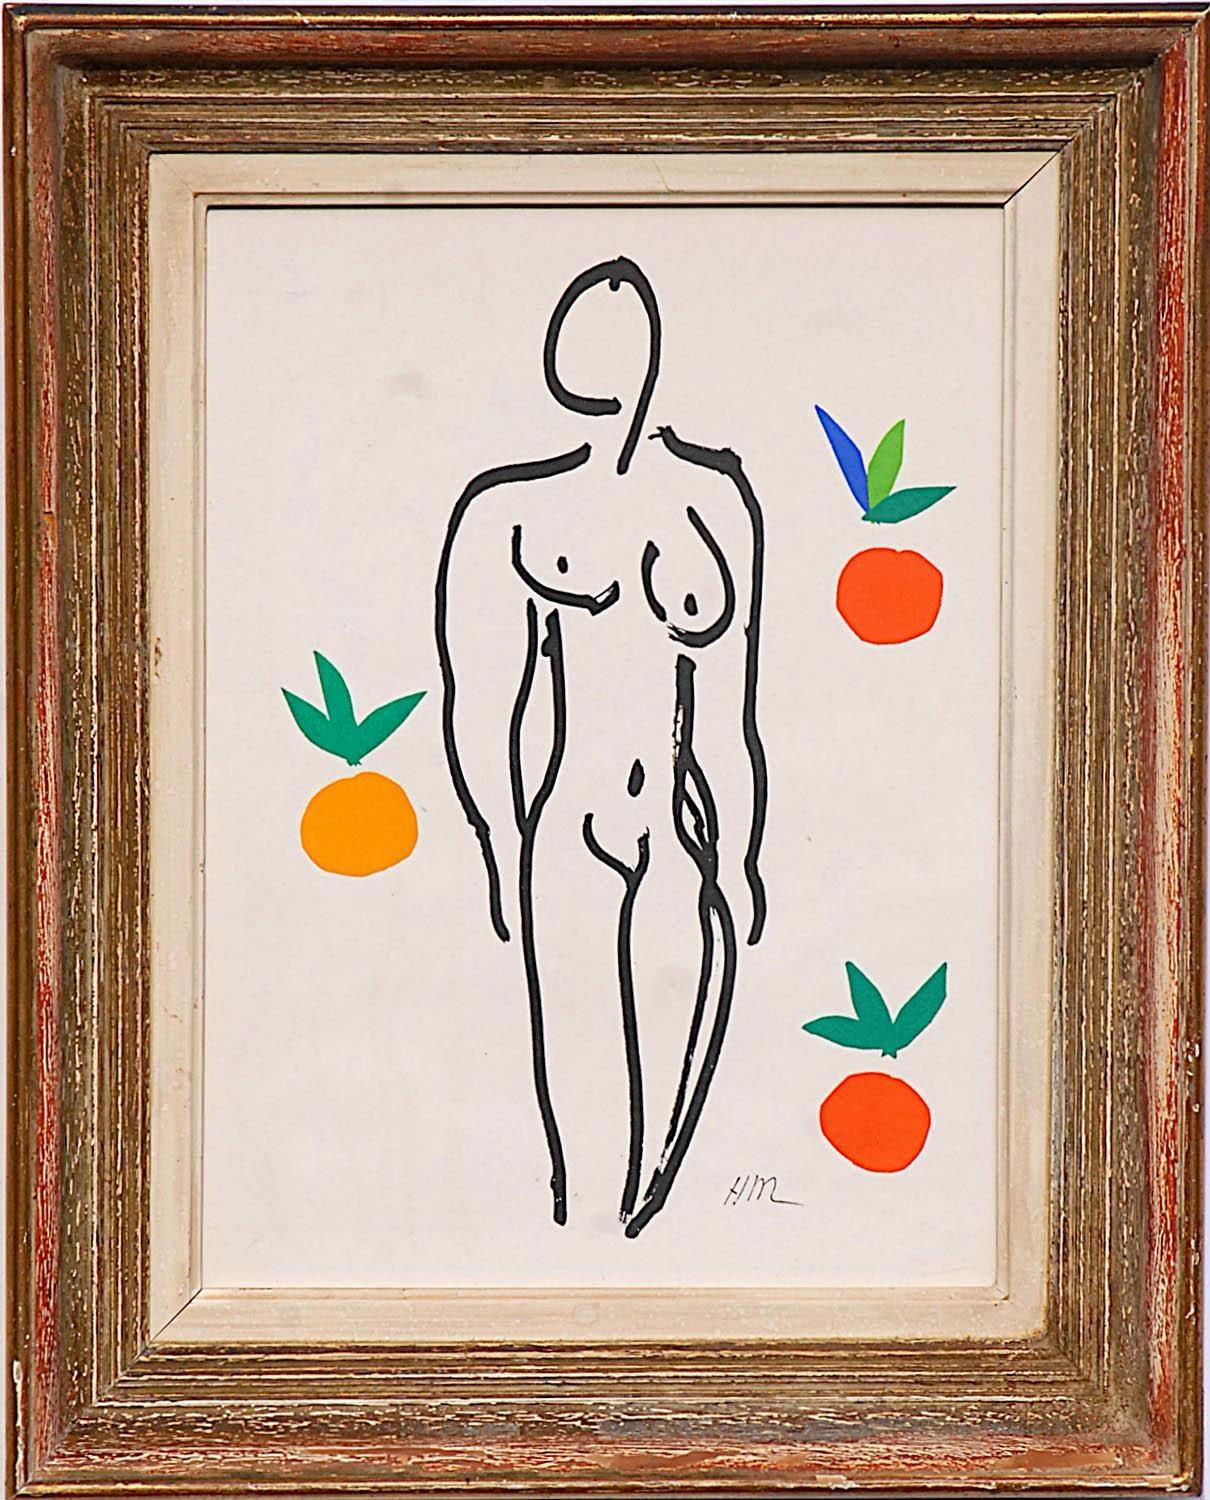 HENRI MATISSE 'Nude with Oranges', original lithograph from the 1954 edition, after Mattisse's cut